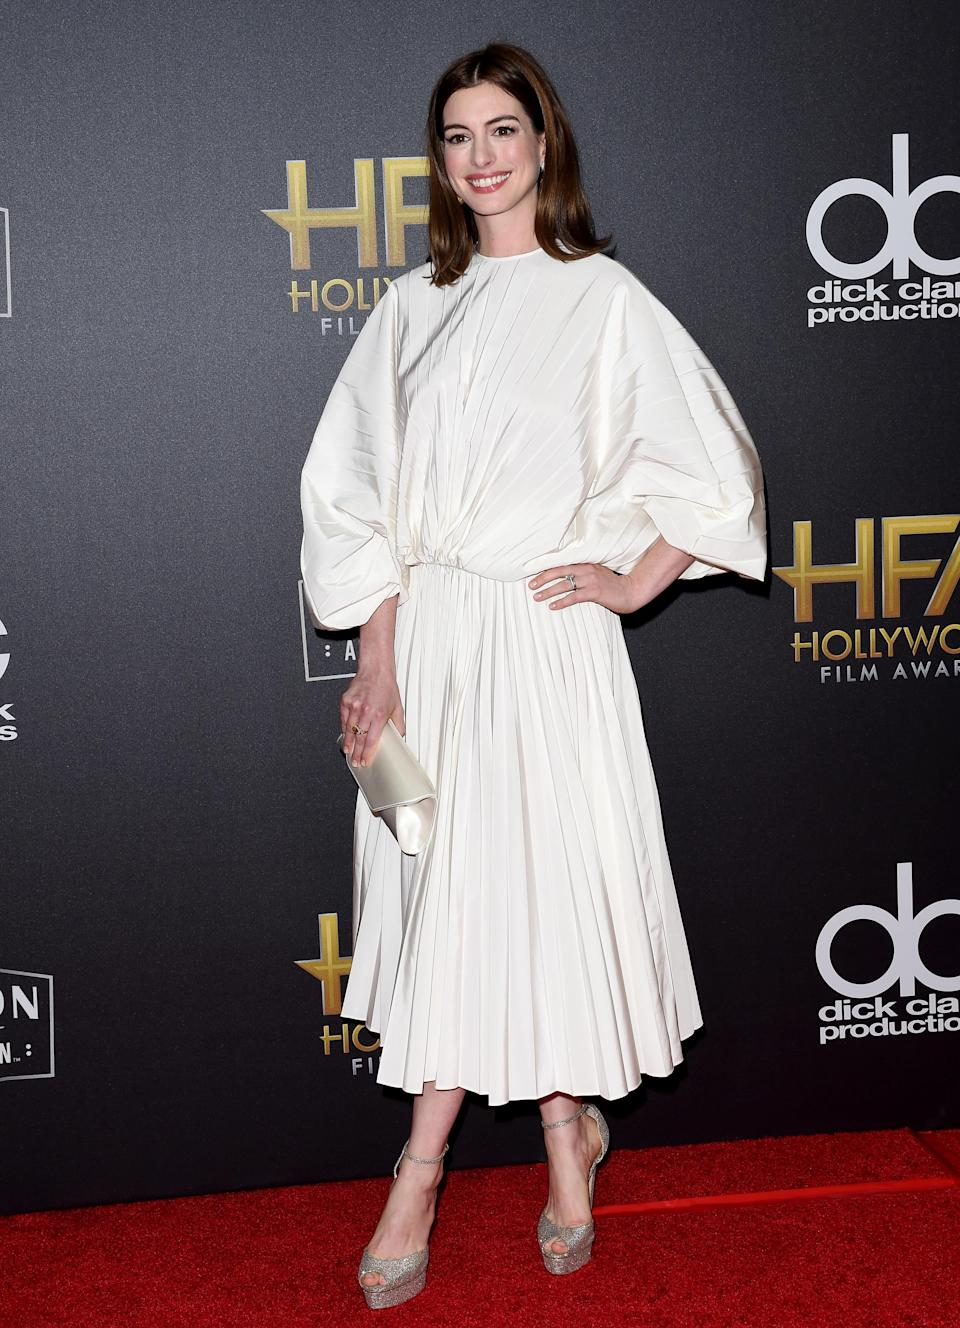 <p>The actress wore a voluminous, white Valentino dress at the 22nd Annual Hollywood Film Awards on November 4, 2018 in Beverly Hills, California. <em>[Photo: Getty]</em> </p>